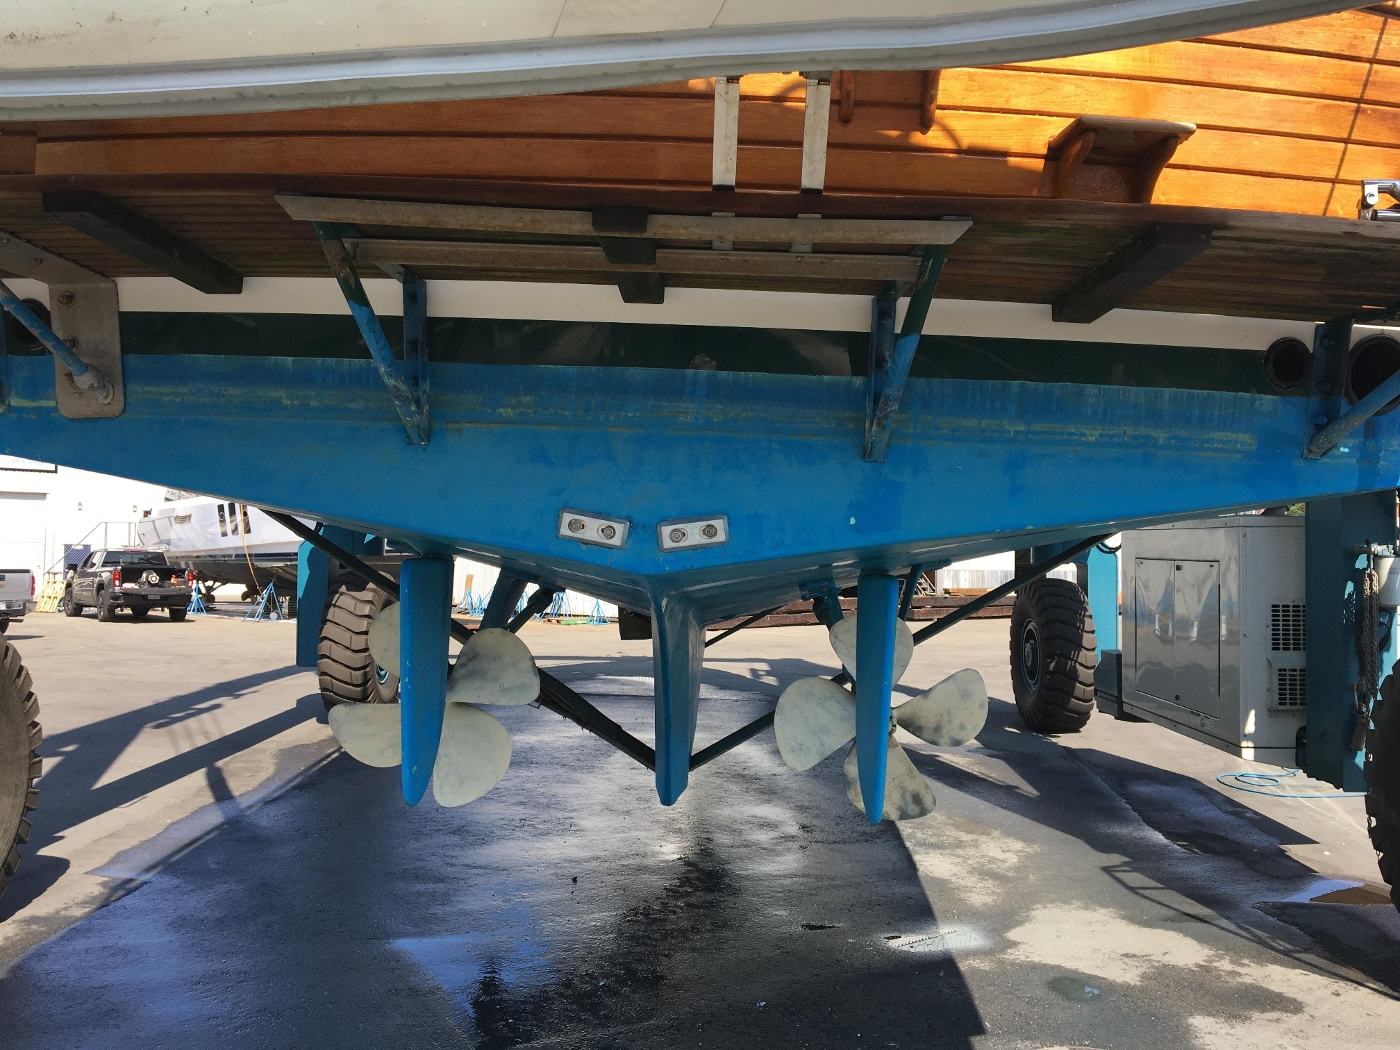 2001 Grand Banks 42 Classic, Rudder and Prop